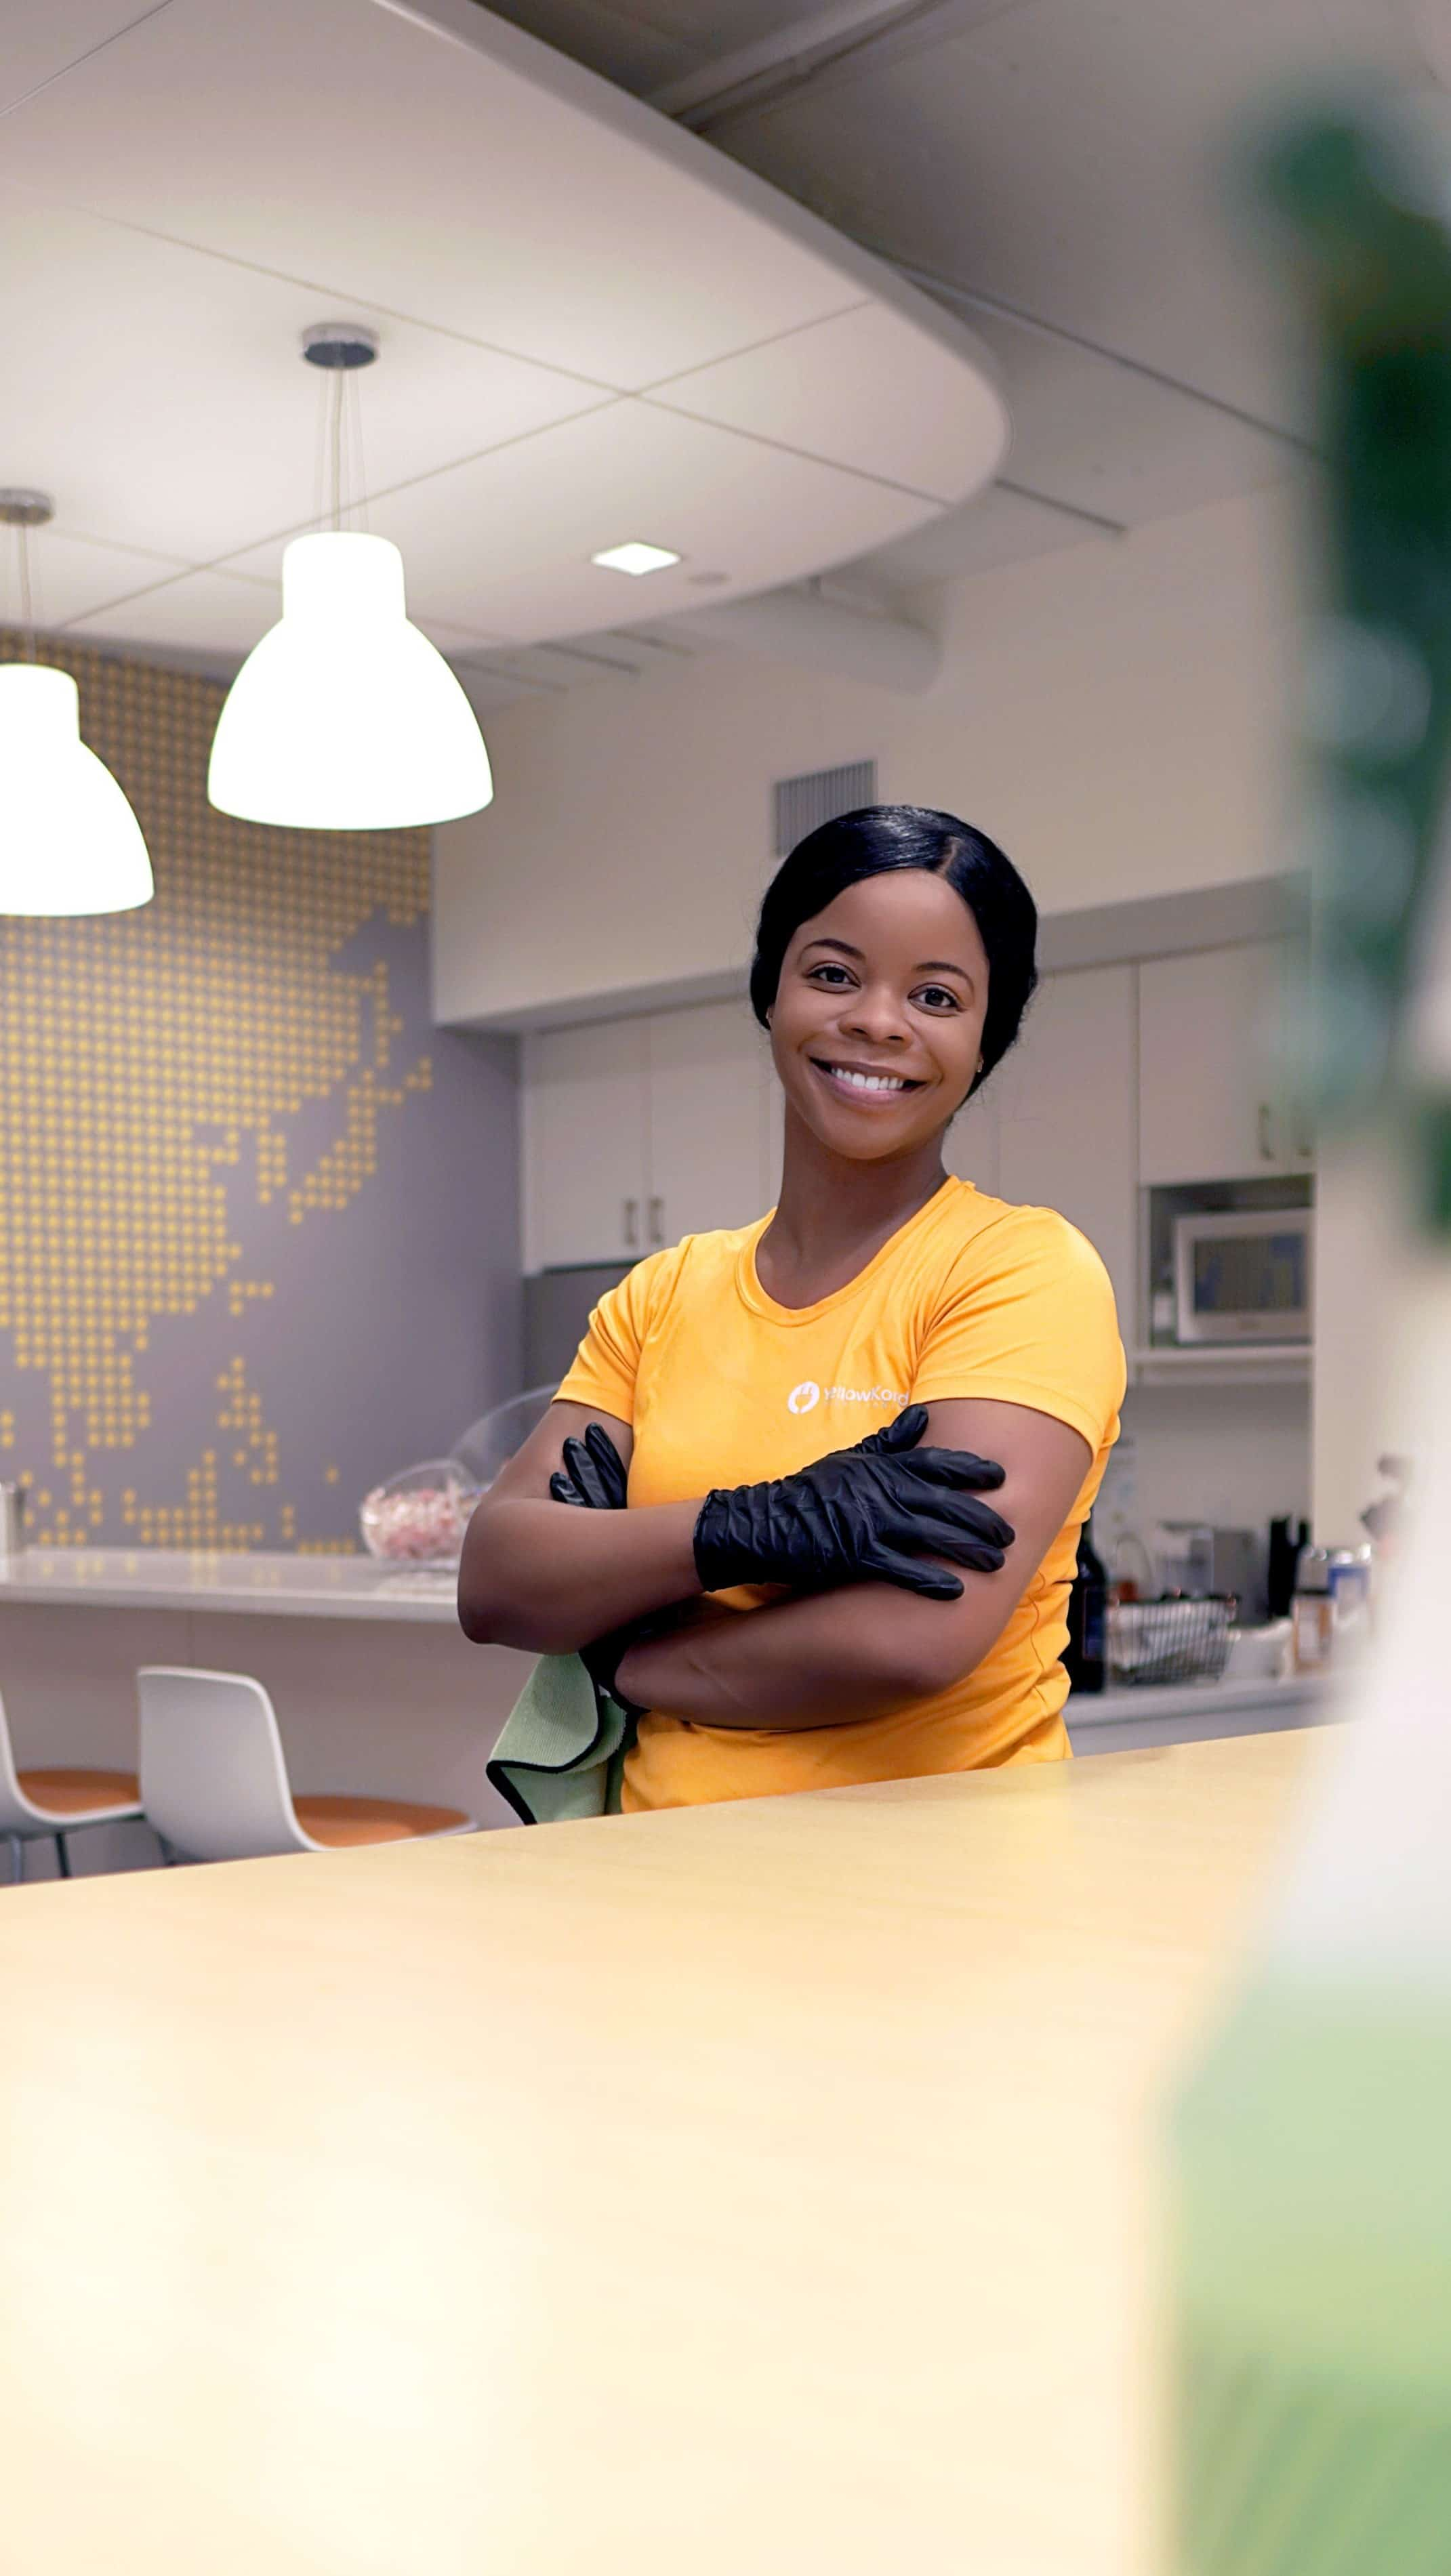 A Yellow Kord employee smiling after finishing her cleaning task